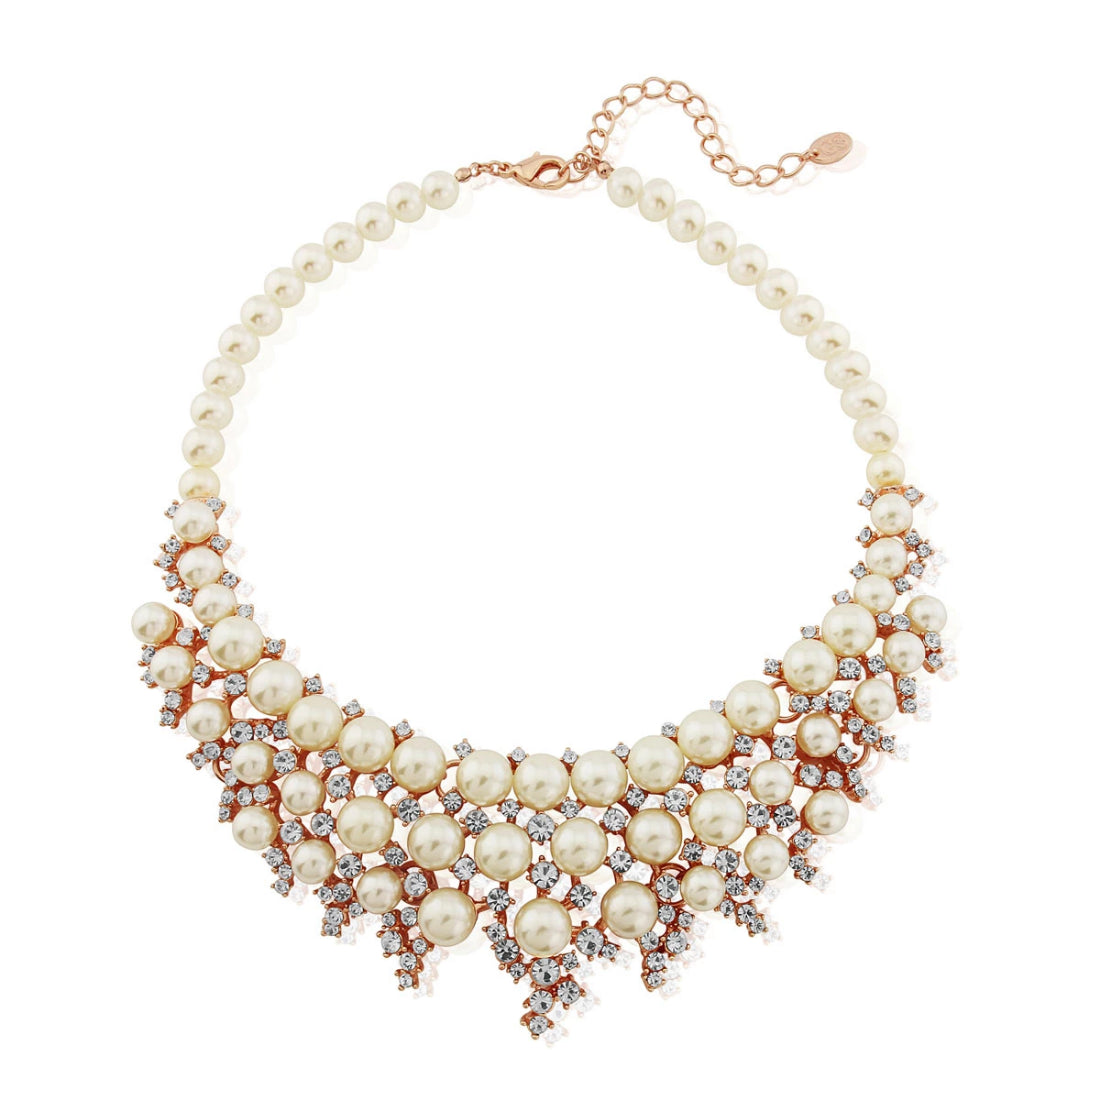 Blushing Romance Statement Collar Necklace